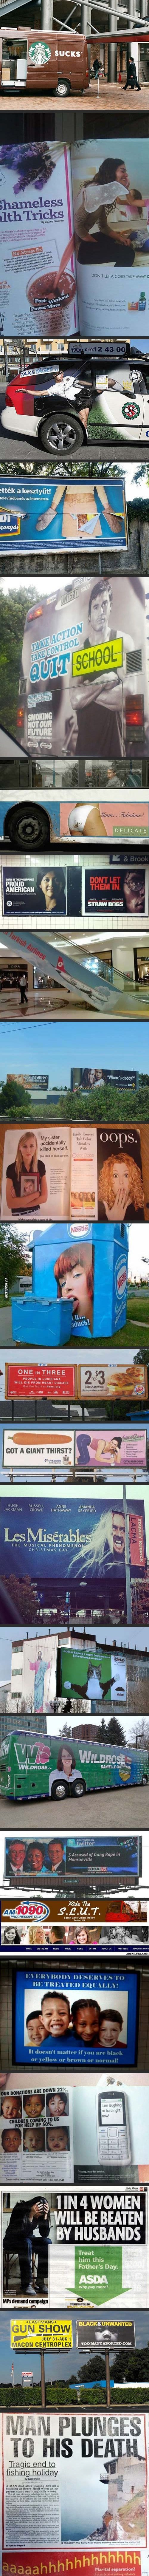 Best Advertising Placements.